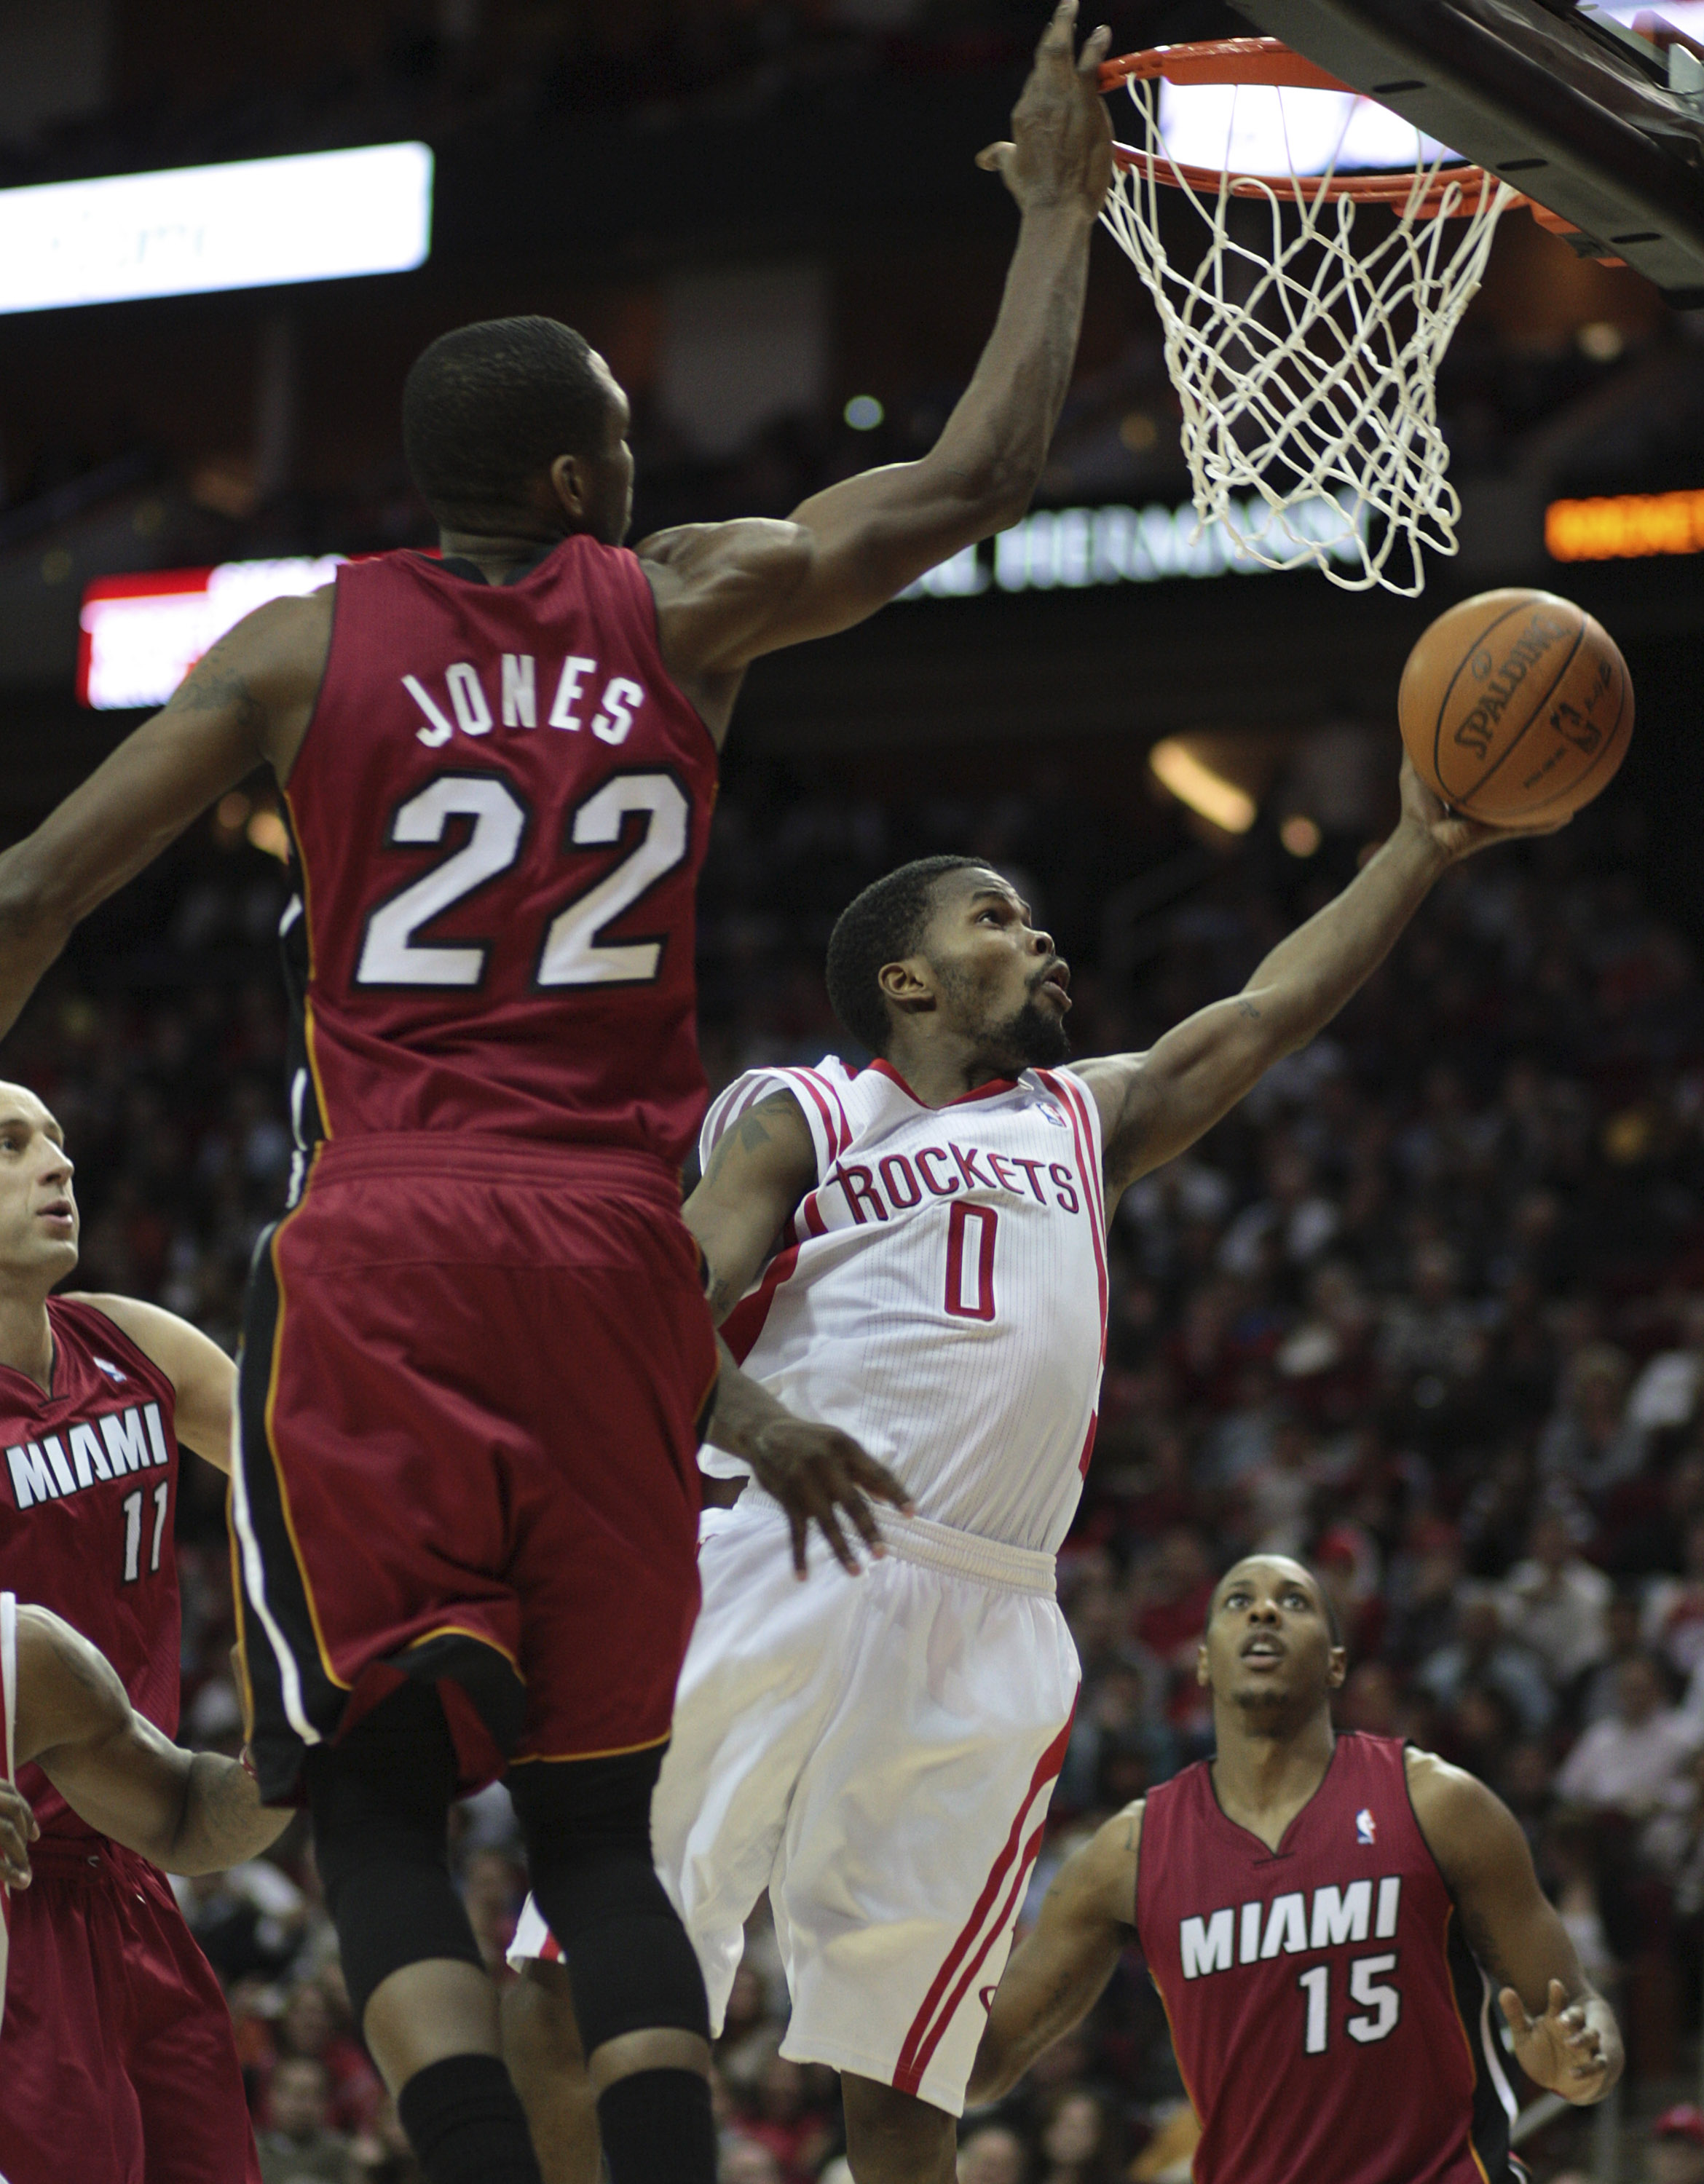 HOUSTON - DECEMBER 29: Aaron Brooks #0 of the Houston Rockets drives to the basket past James Jones #22 of the Miami Heat at Toyota Center on December 29, 2010 in Houston, Texas.  (Photo by Bob Levey/Getty Images)